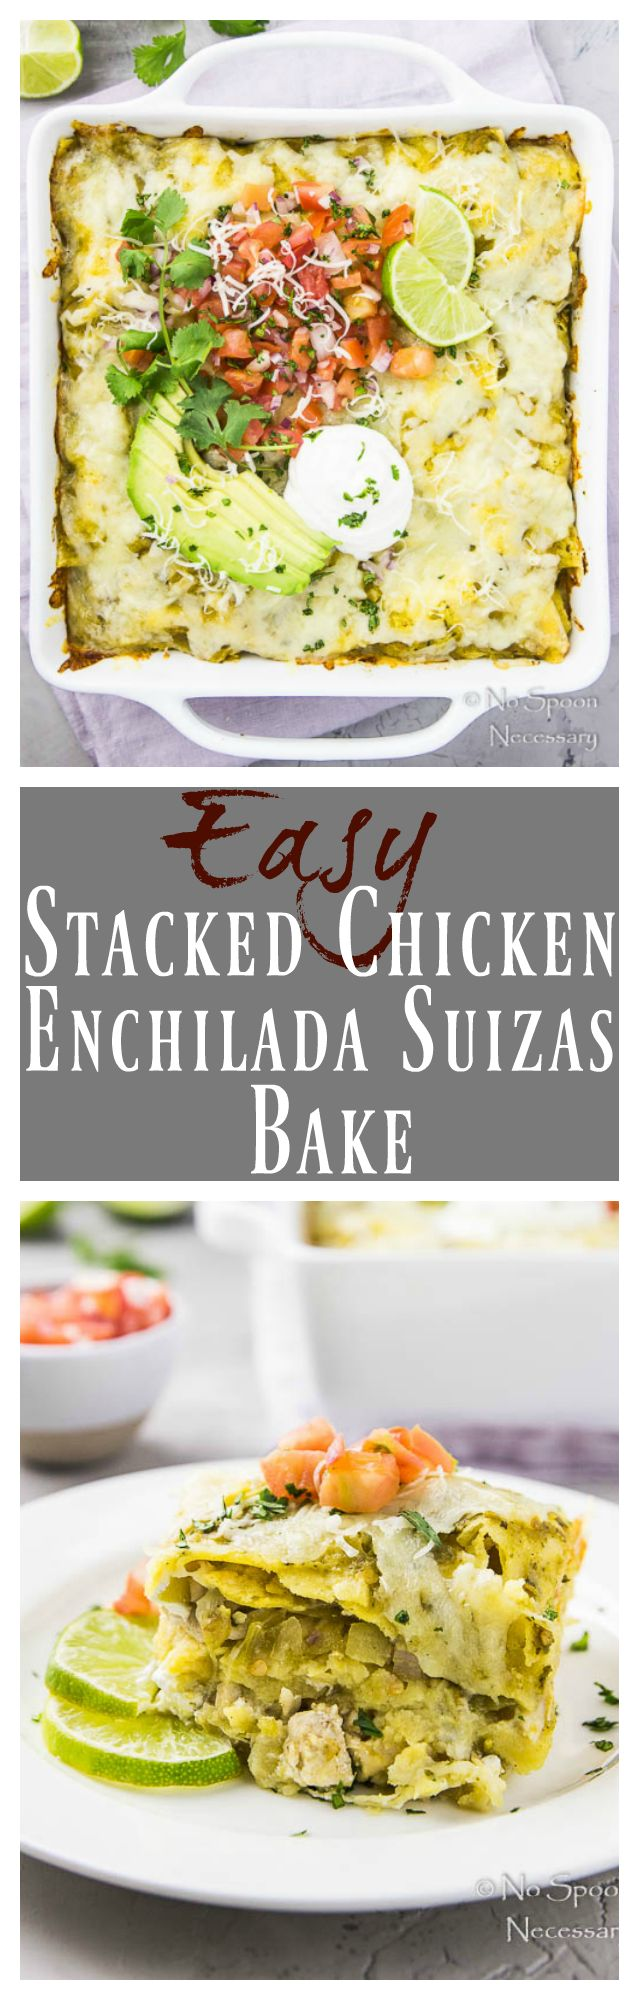 Easy Stacked Enchilada Suizas Bake | Only 8 Ingredients & 10 minutes of Prep! #easy #chicken #enchiladas #recipe